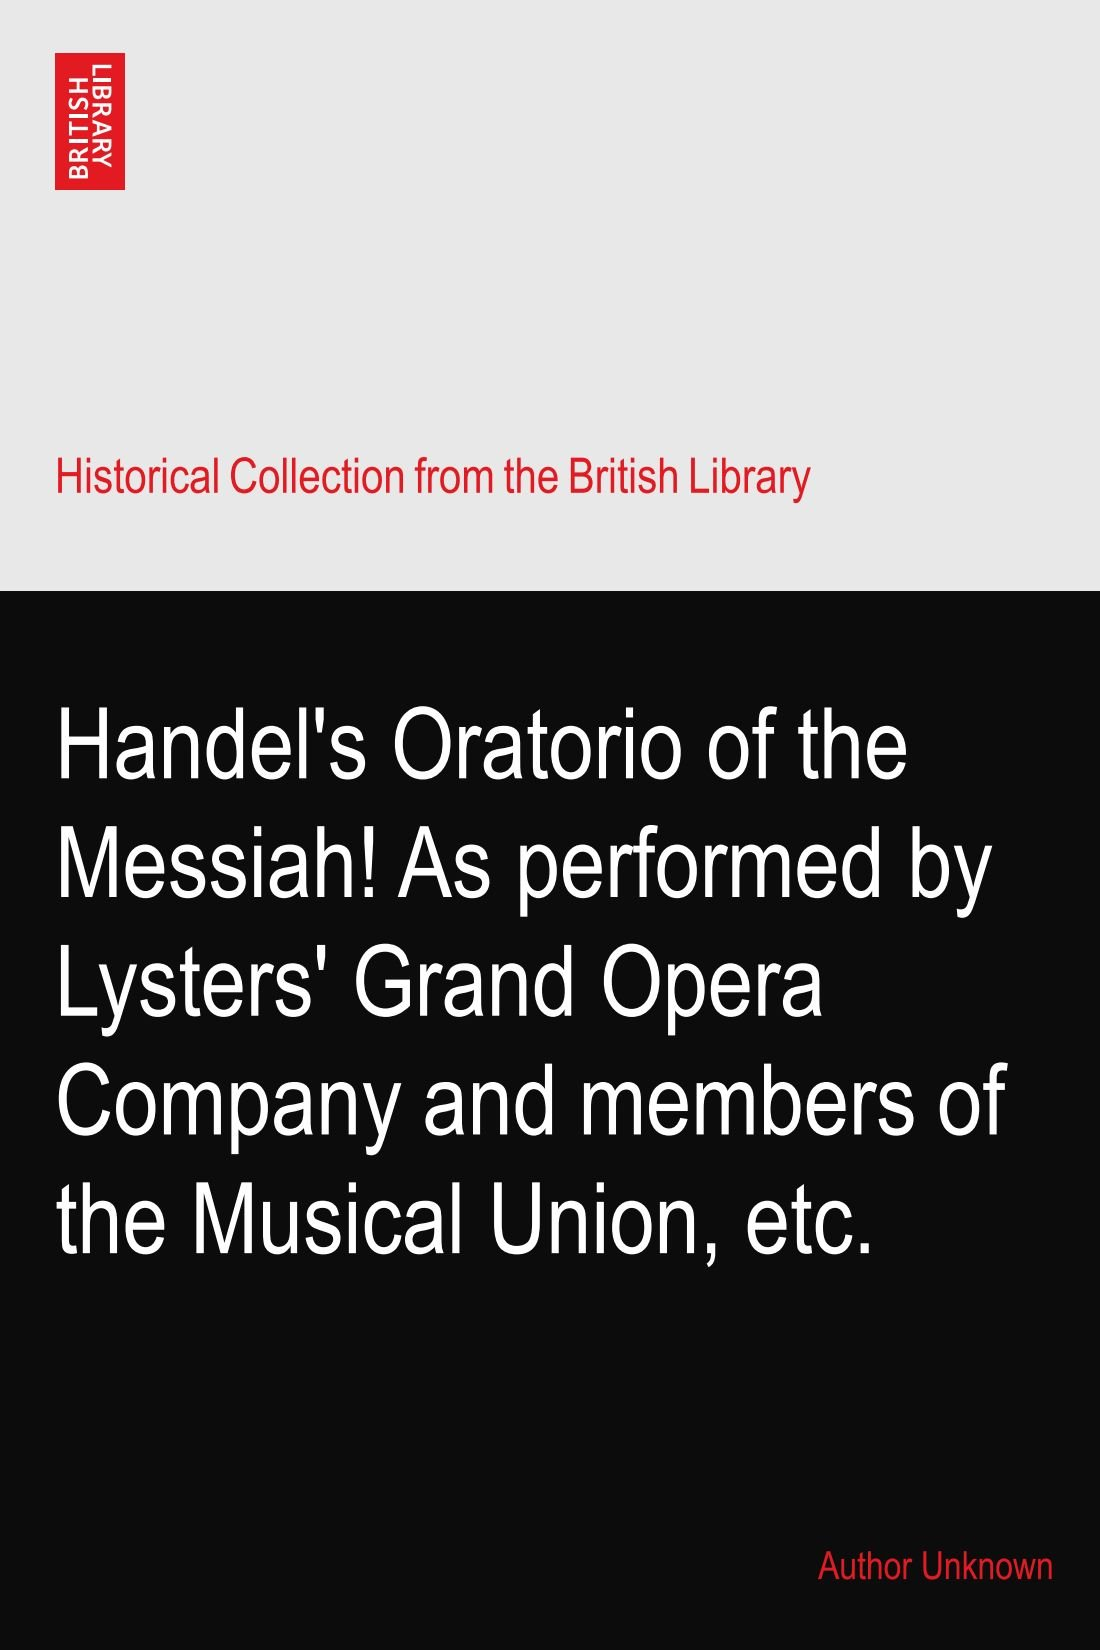 Read Online Handel's Oratorio of the Messiah! As performed by Lysters' Grand Opera Company and members of the Musical Union, etc. pdf epub